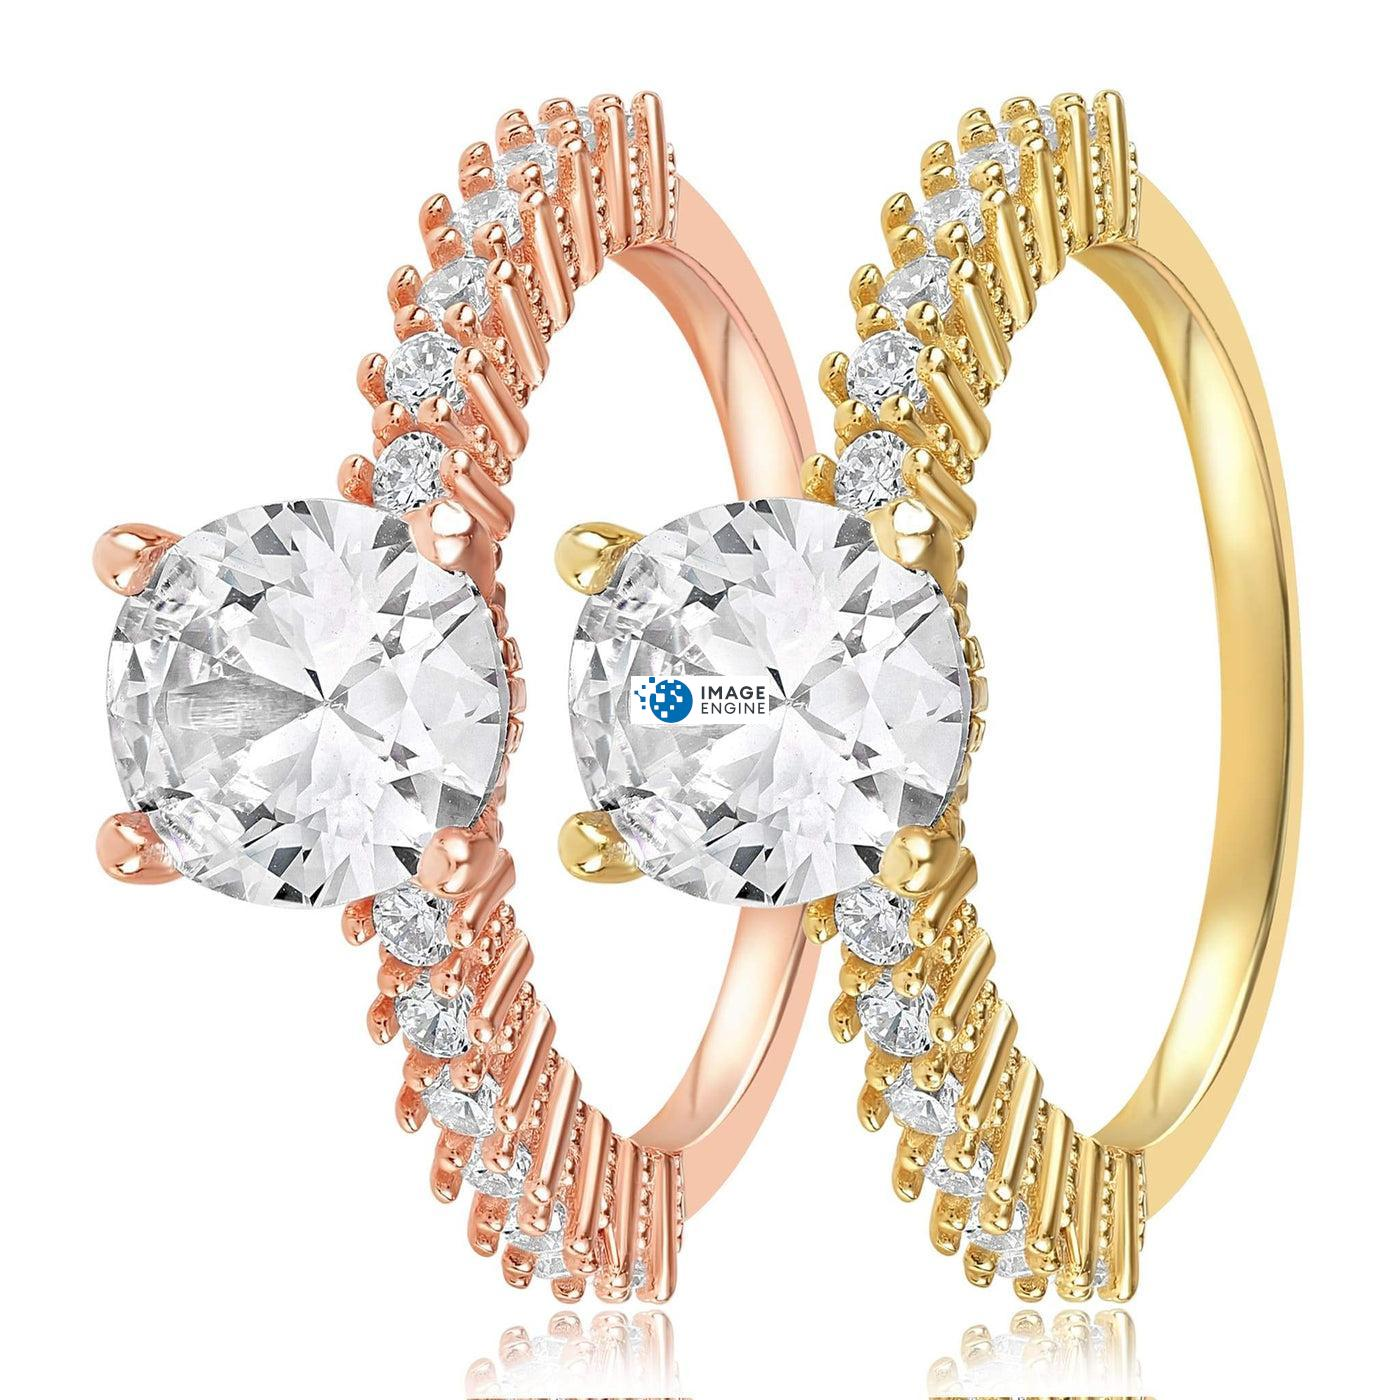 Cara Zirconia Ring - Side by Side - 18K Rose Gold Vermeil_ and 18K _Yellow Gold_Vermeil.jpg